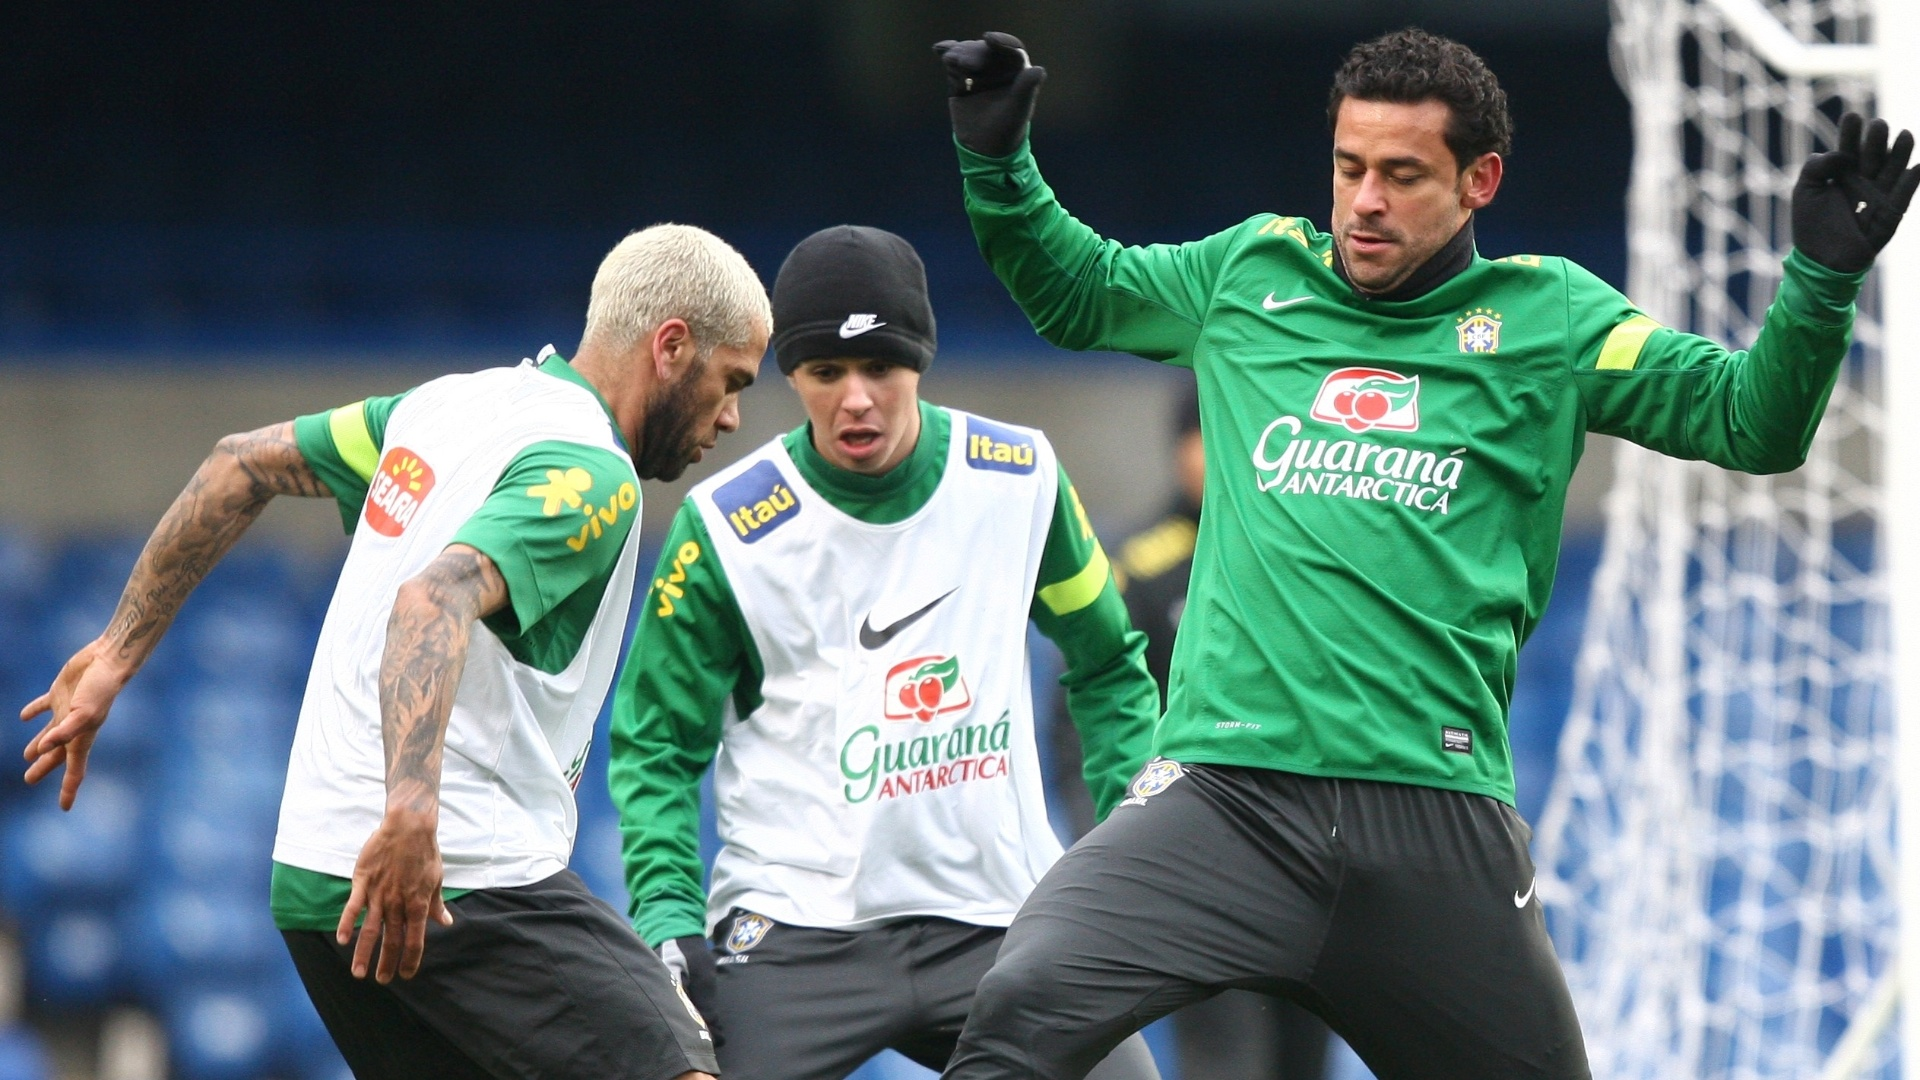 24.mar.2013 - Fred e Daniel Alves disputam a bola durante treinamento da seleo brasileira e so observados por Oscar